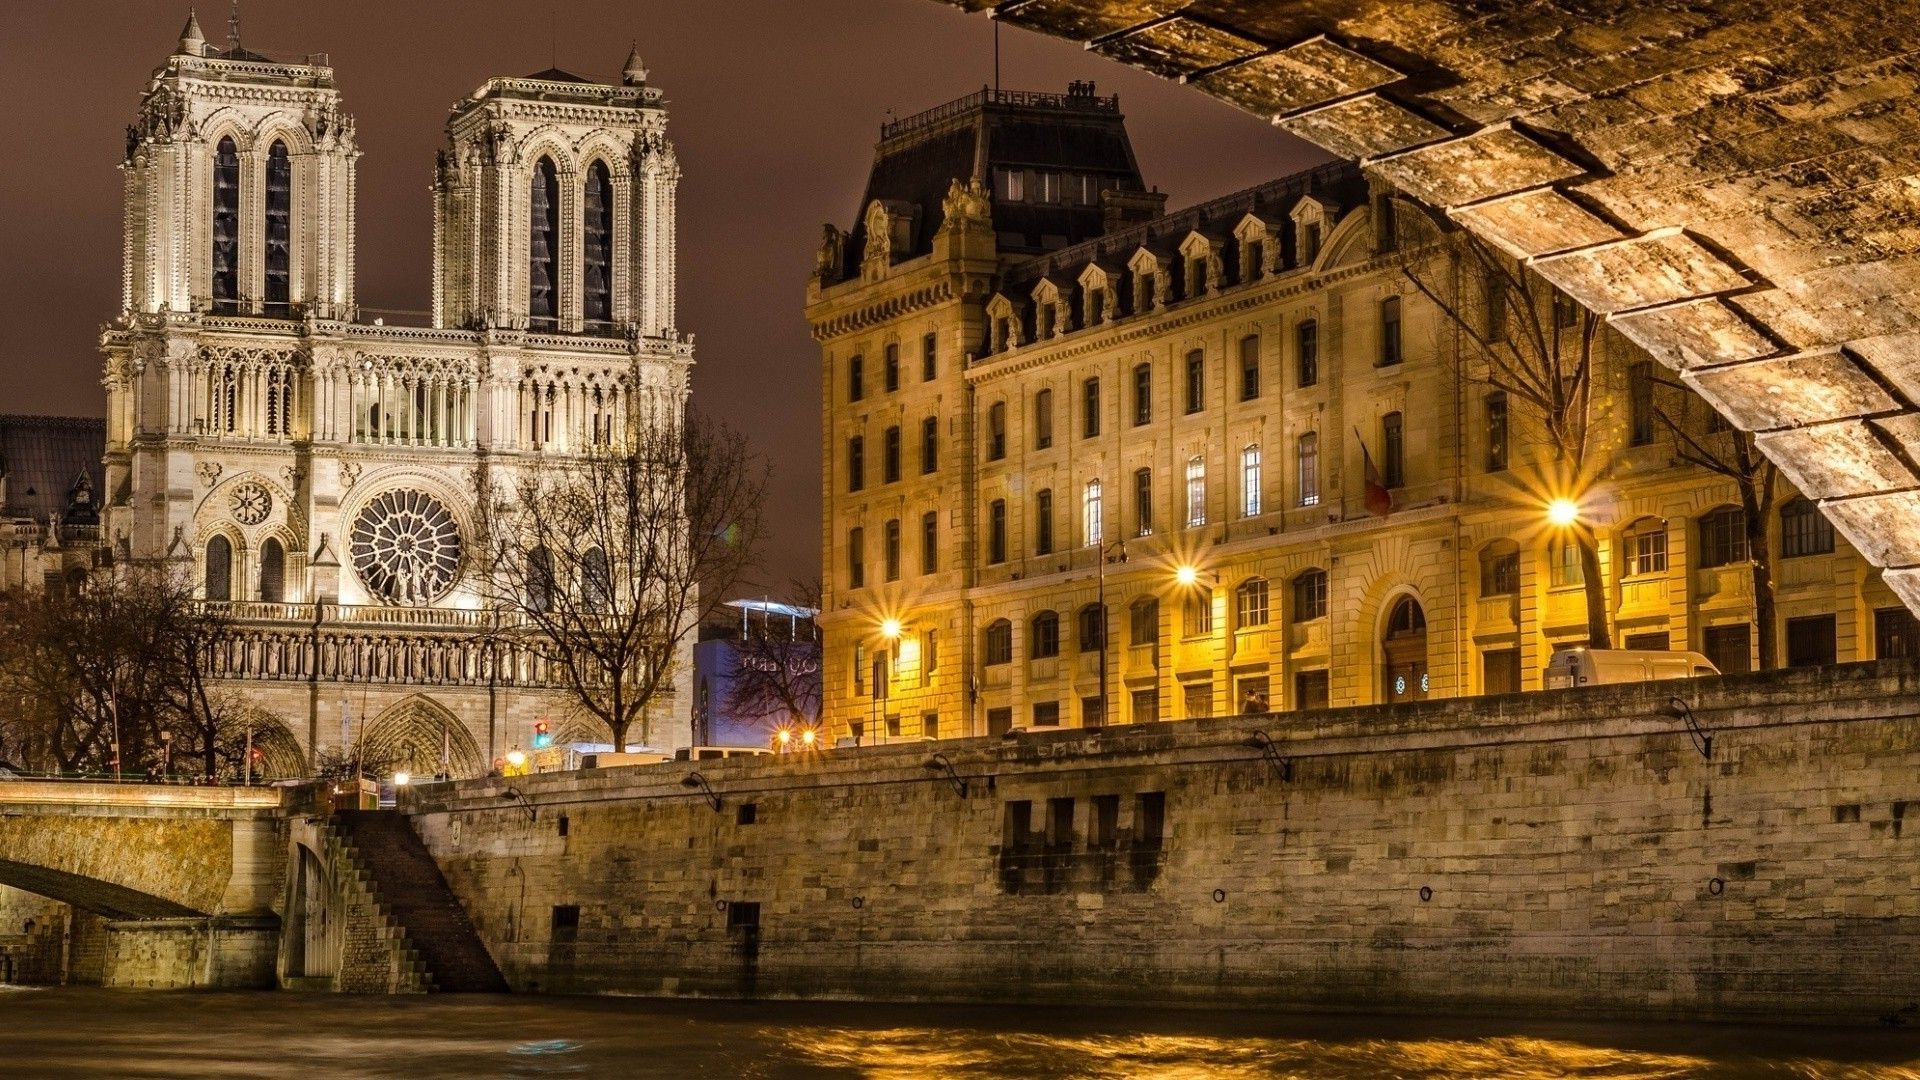 Res: 1920x1080, architecture, Cityscape, City, Building, Old Building, Street, Cathedral,  Street Light, Paris, France, Notre dame, River, Bridge, Trees, Lamps Wallpapers  HD ...